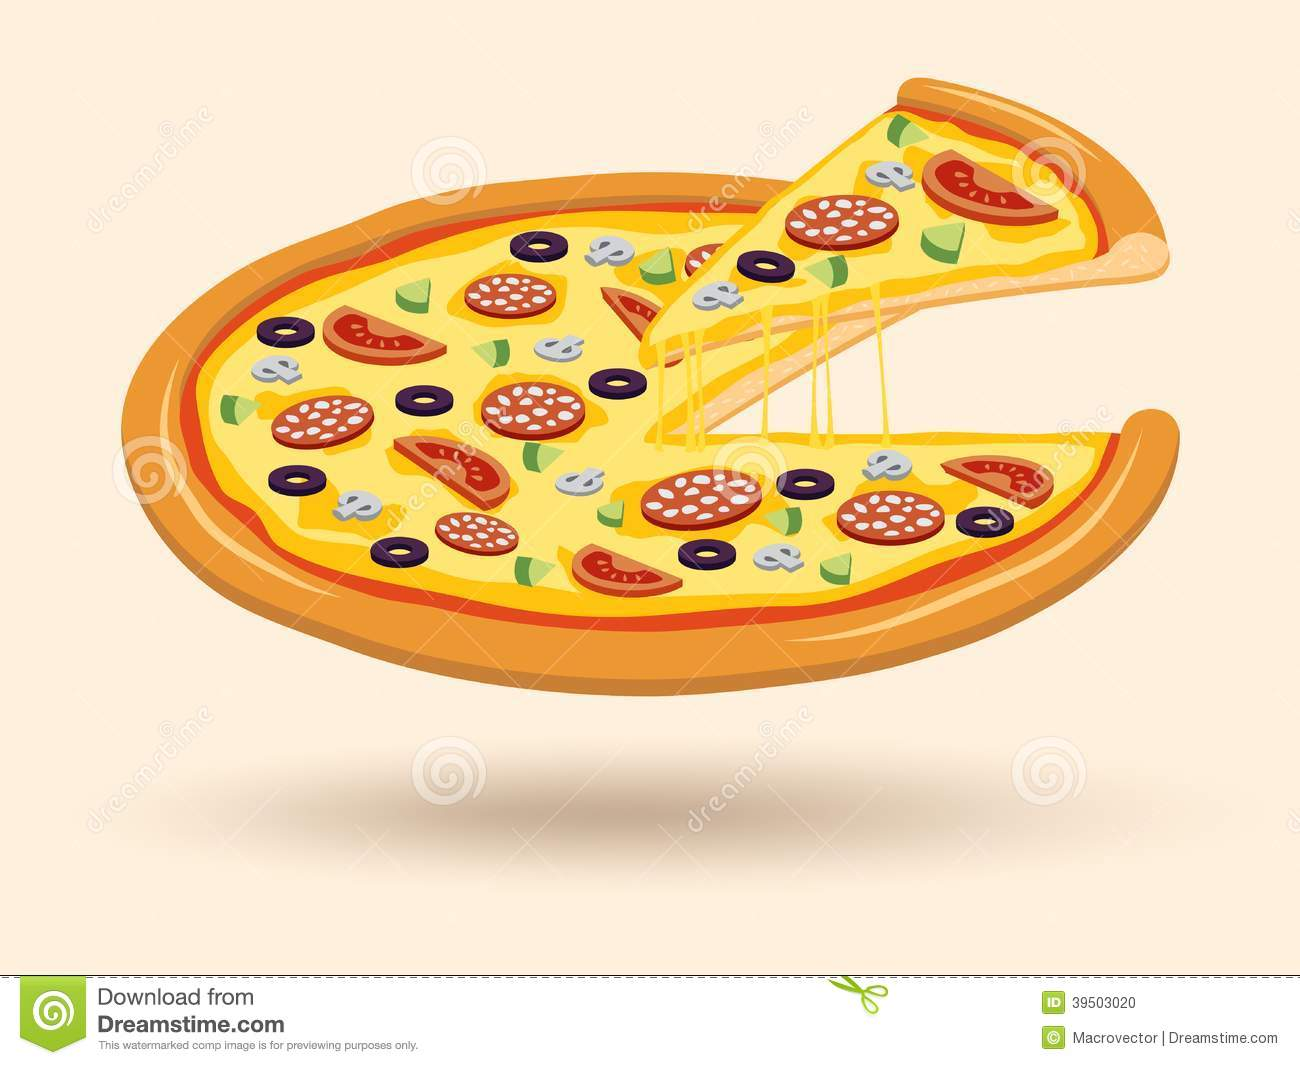 Meat cheese pizza symbol